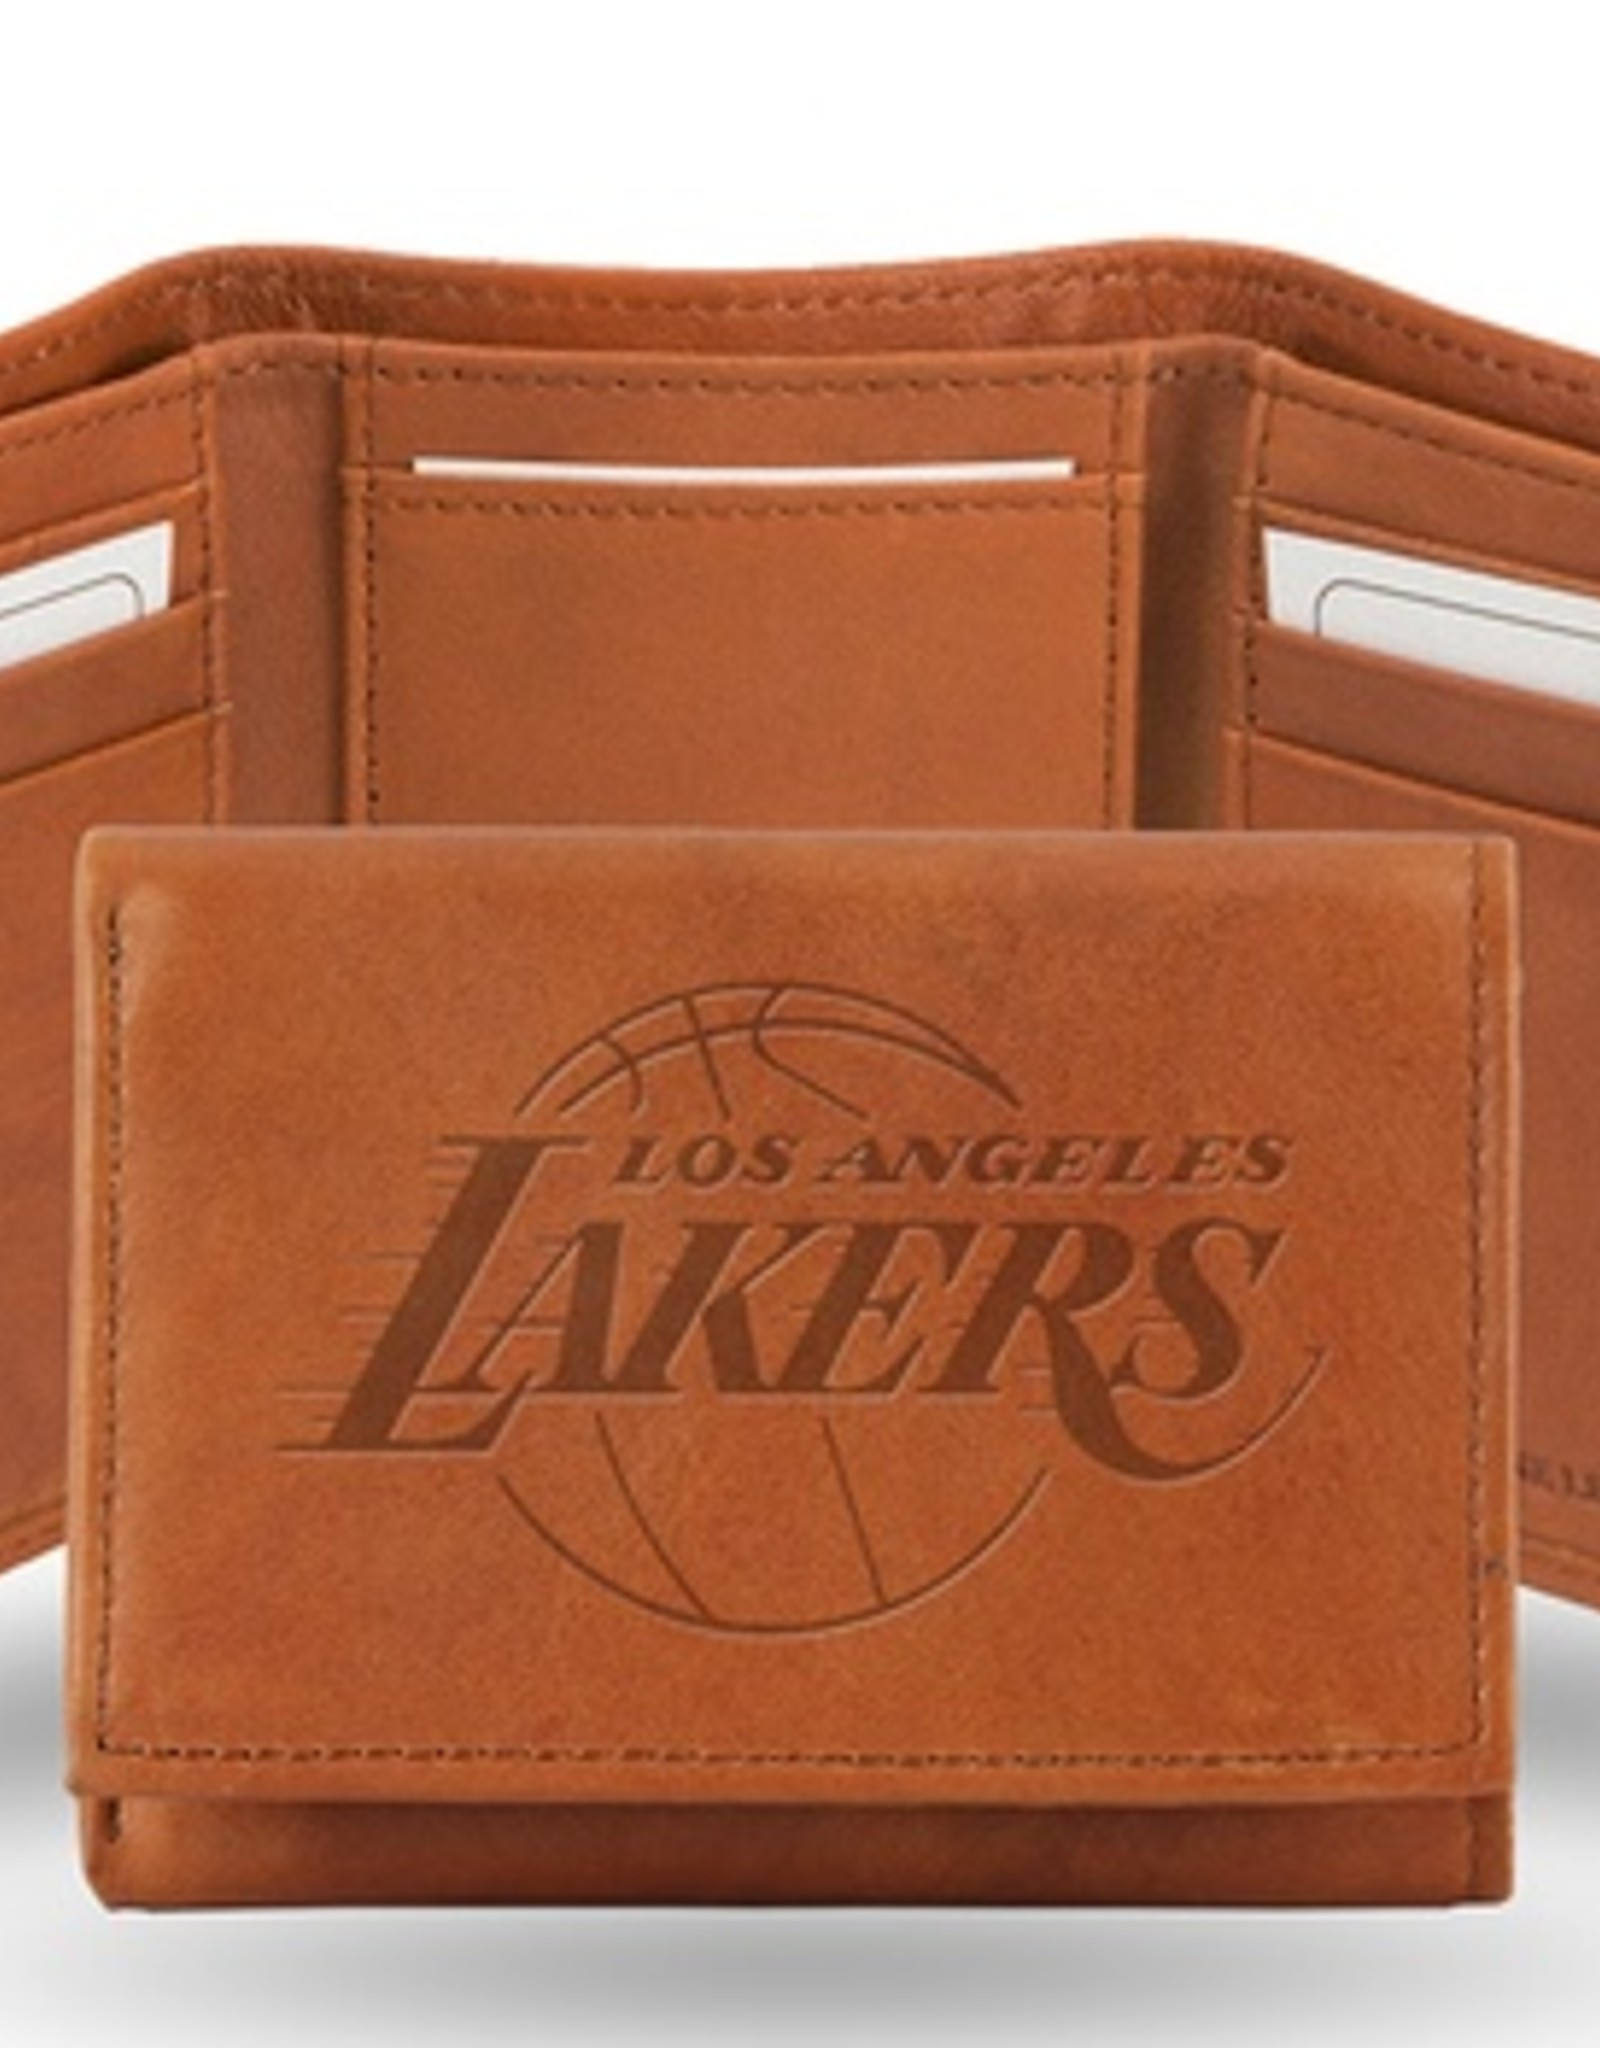 RICO INDUSTRIES Los Angeles Lakers Genuine Leather Vintage Trifold Wallet